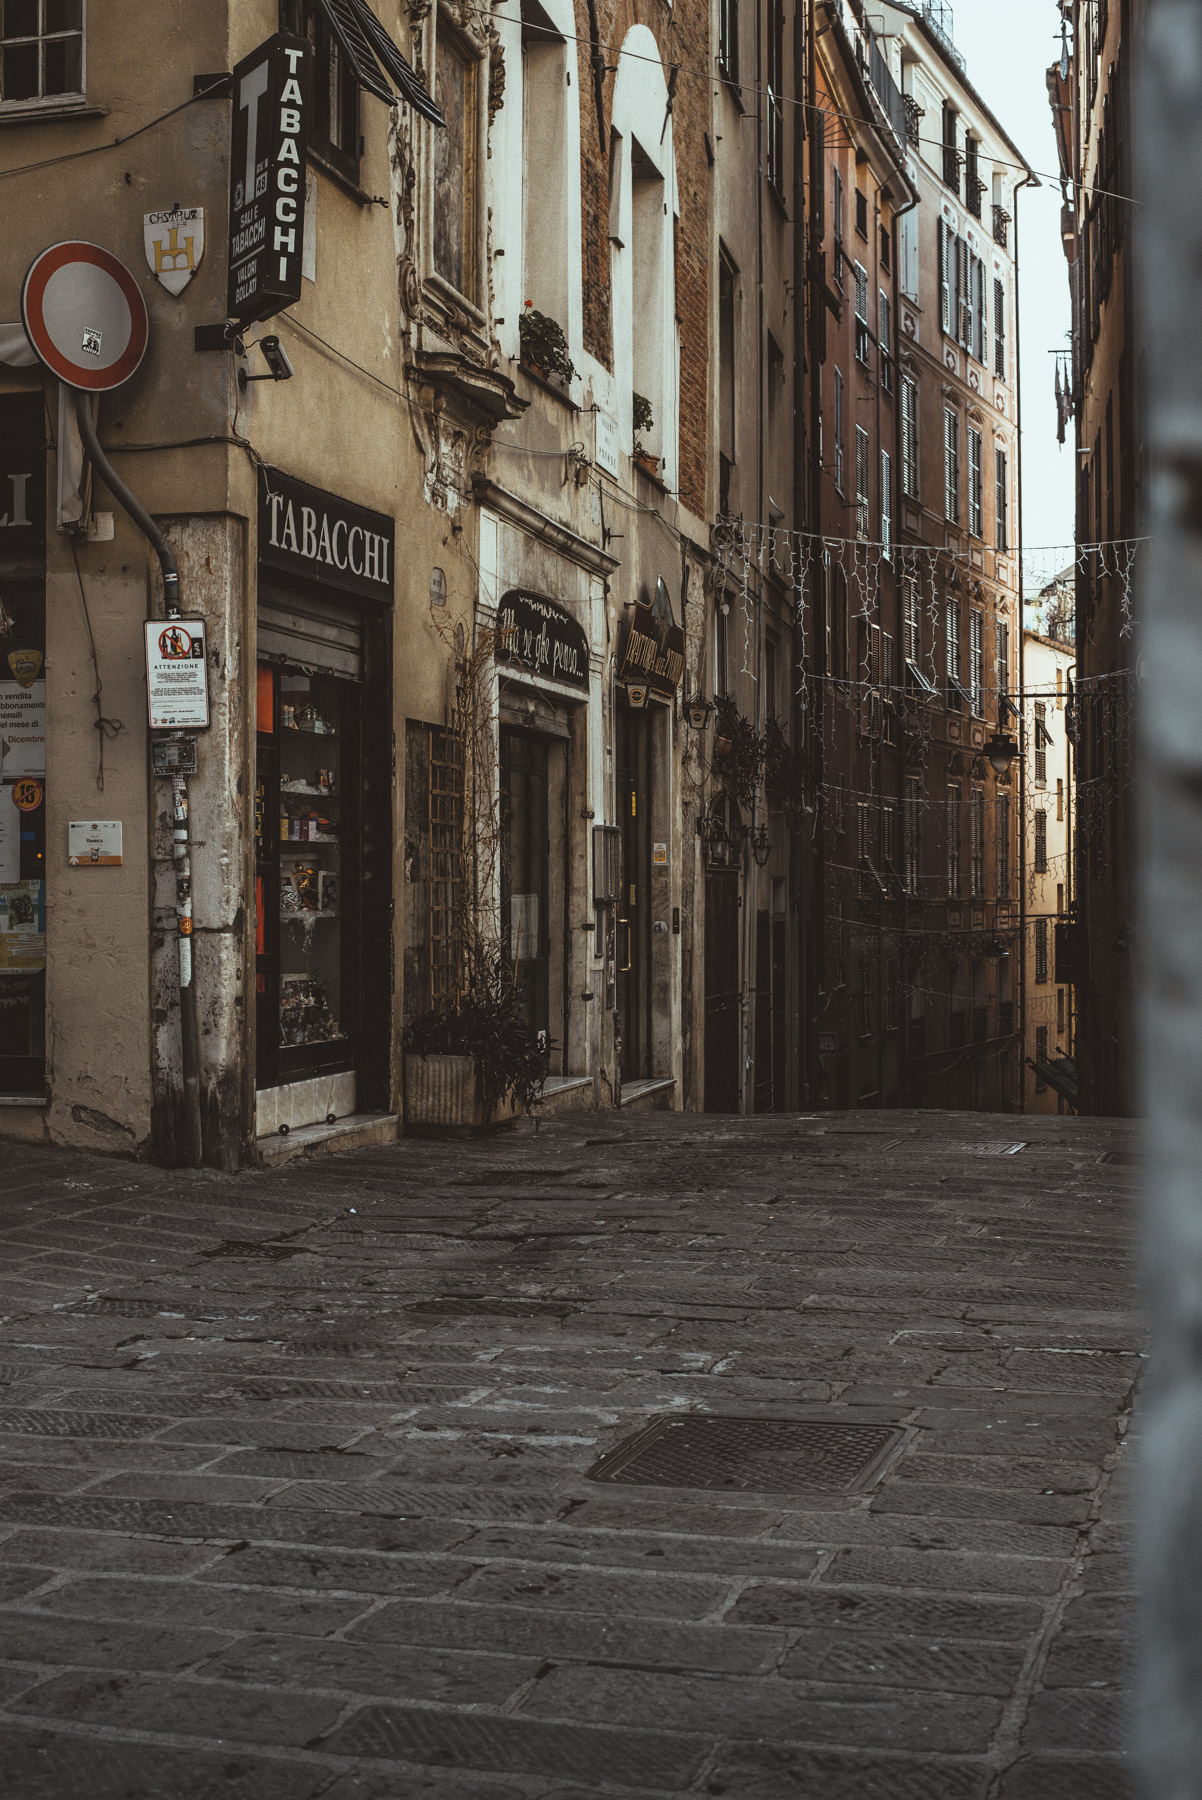 A street photograph that shows caruggi streets in the old town of Genoa